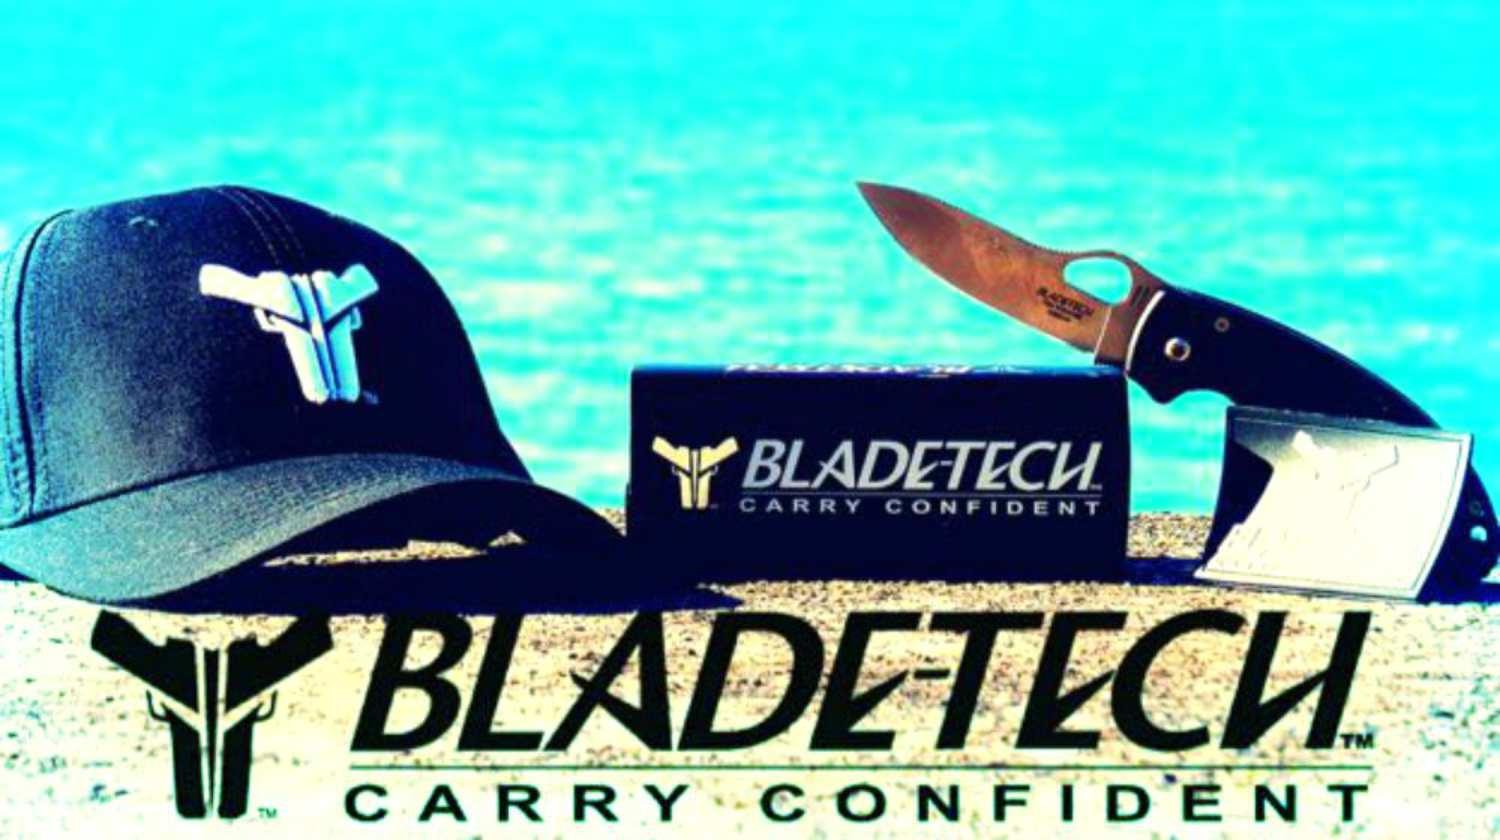 Feature | Bladetech carry confident | Survival Knives You Need From Blade-Tech Industries